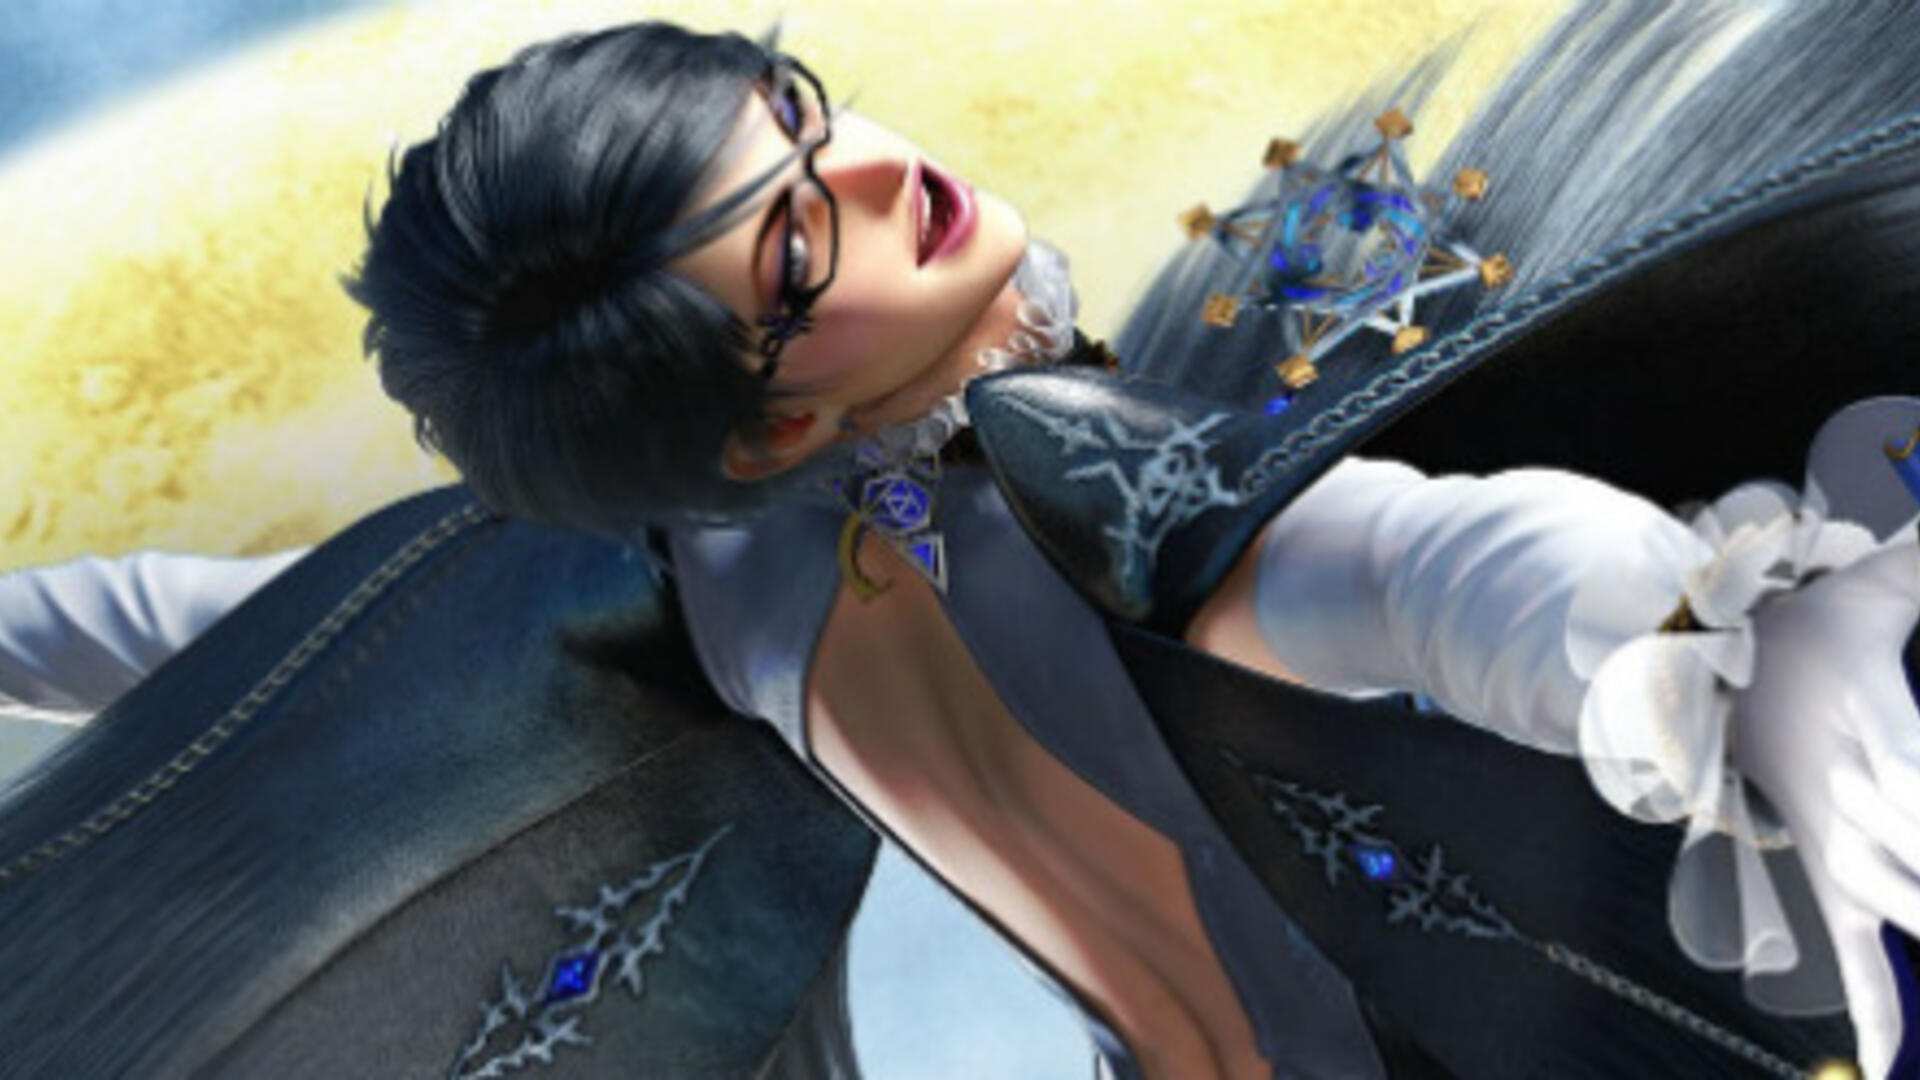 USgamer Club Live: Bayonetta 2 Part 1 — Bob and Kat Take on Heaven and Hell at 1pm PT/4pm ET